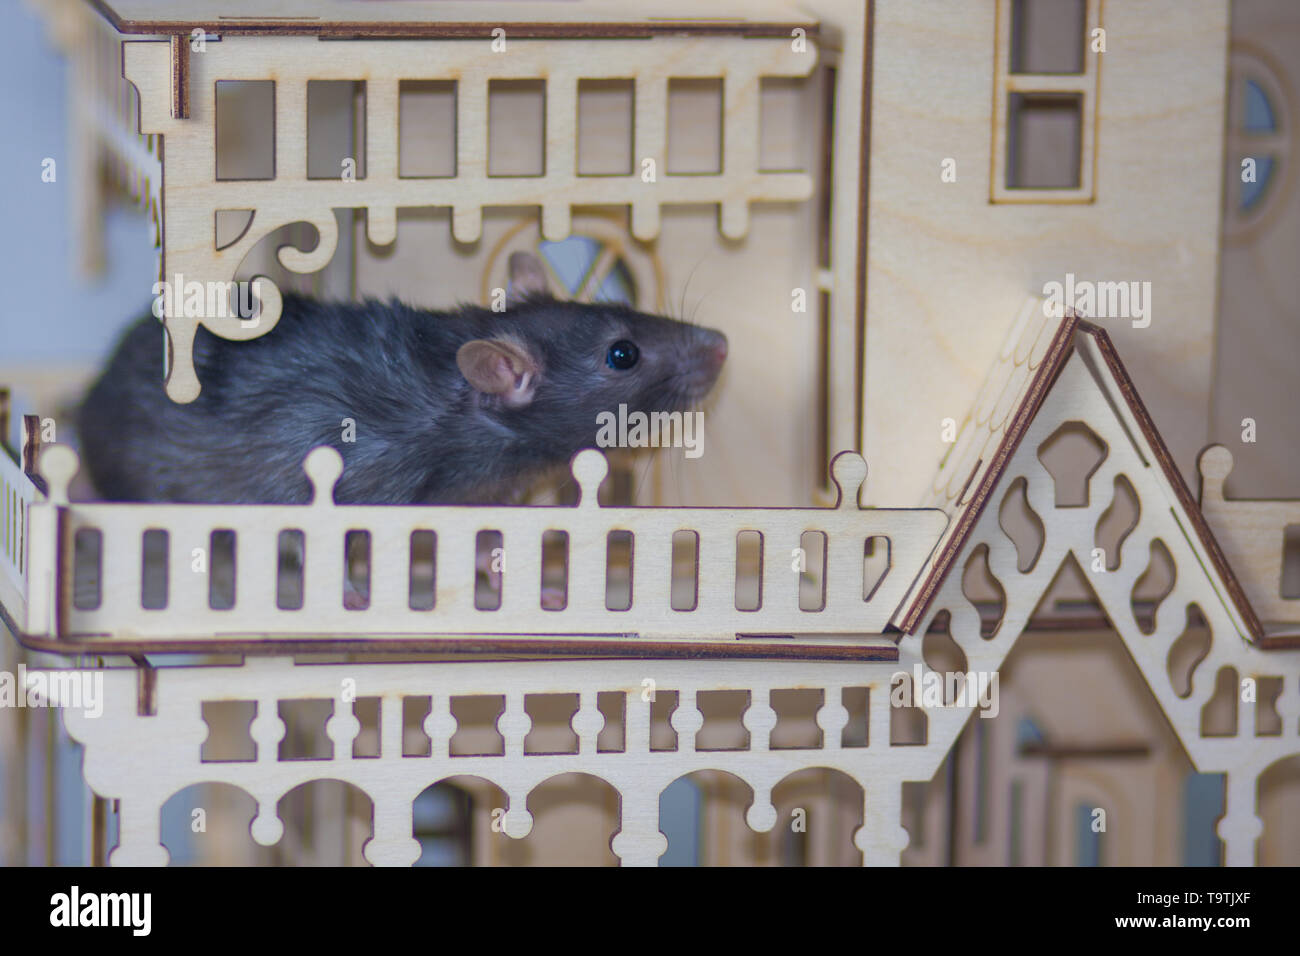 The concept of the mouse Kingdom. A gray rat in a wooden house. Rodent in the Palace. - Stock Image